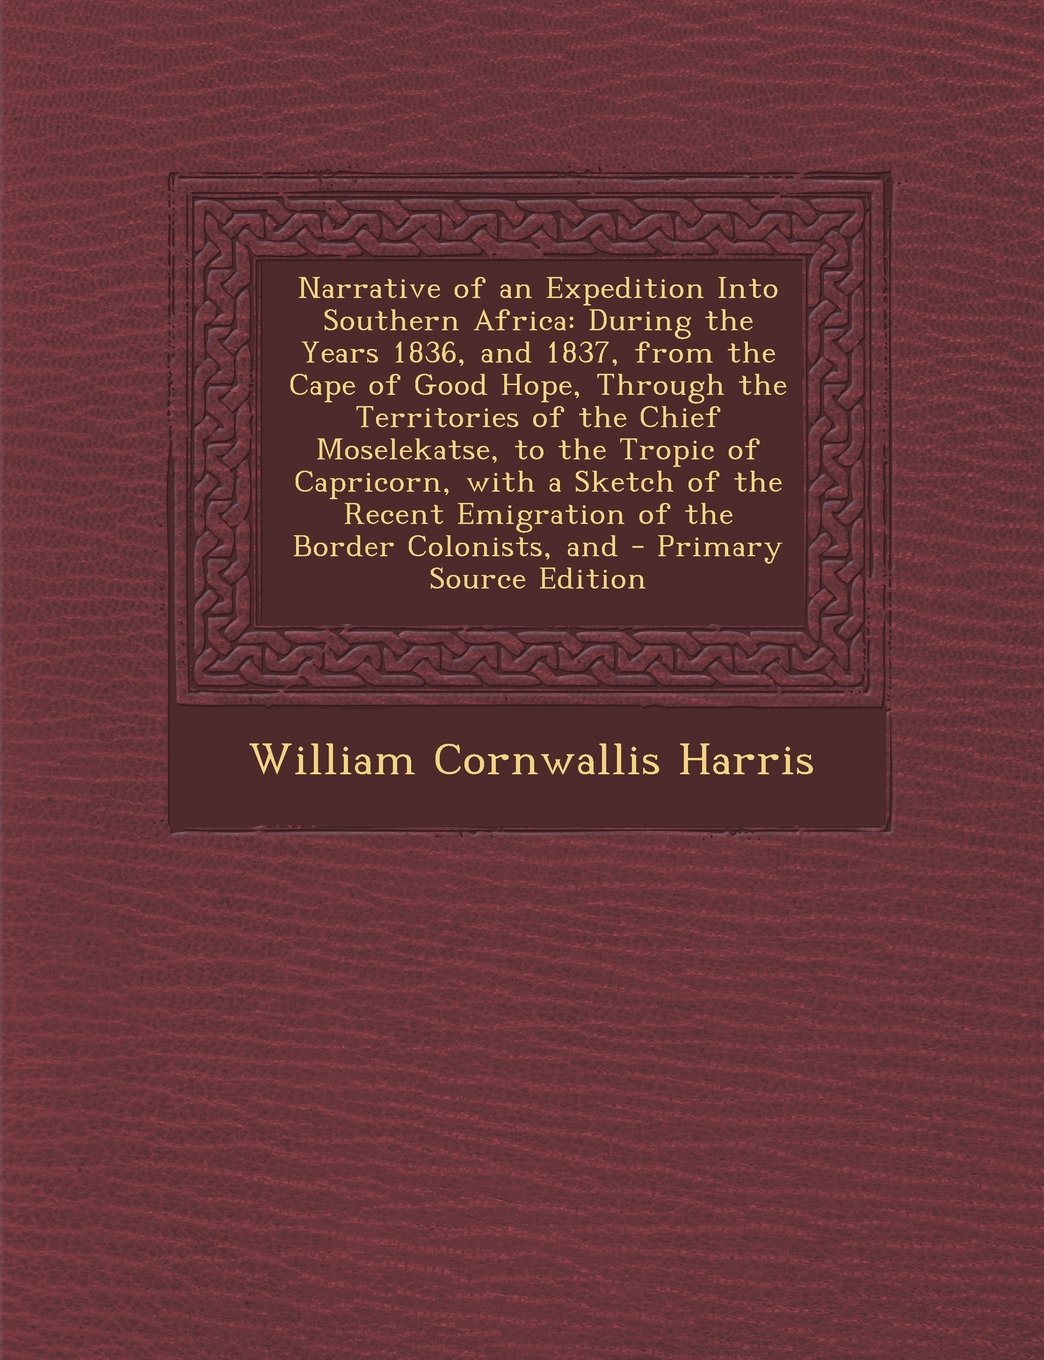 Narrative of an Expedition Into Southern Africa: During the Years 1836, and 1837, from the Cape of Good Hope, Through the Territories of the Chief ... Emigration of the Border Colonists, and pdf